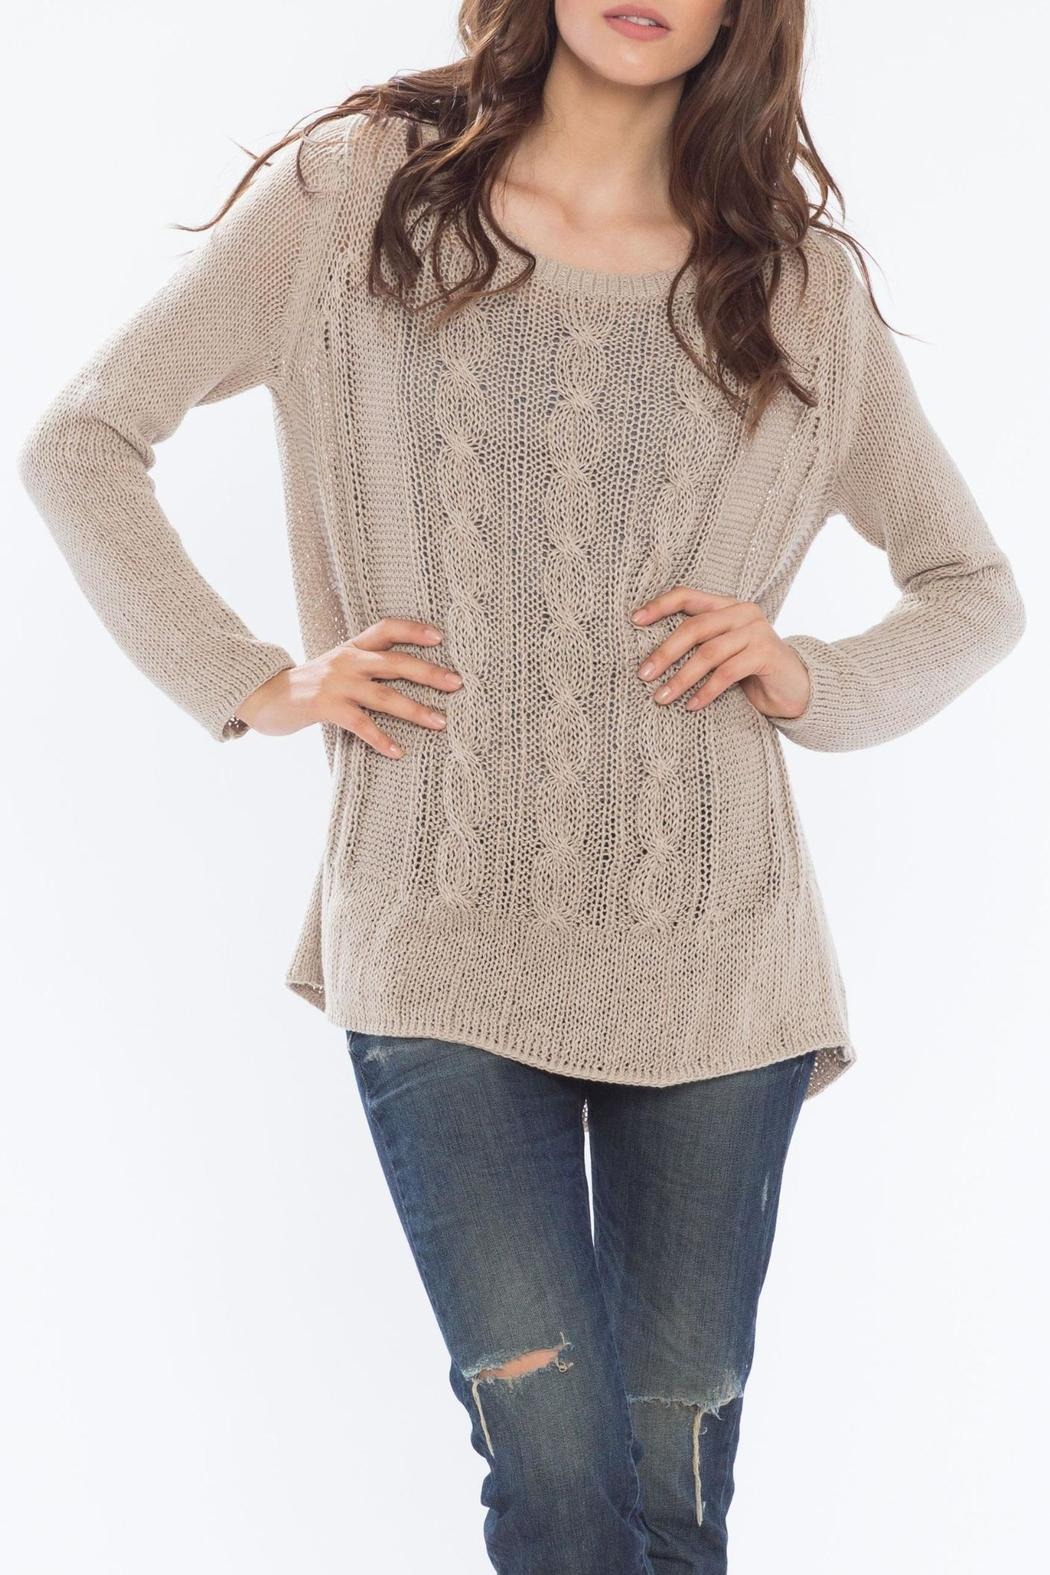 Wooden Ships Cable Knit Tunic From Massachusetts By Sundance